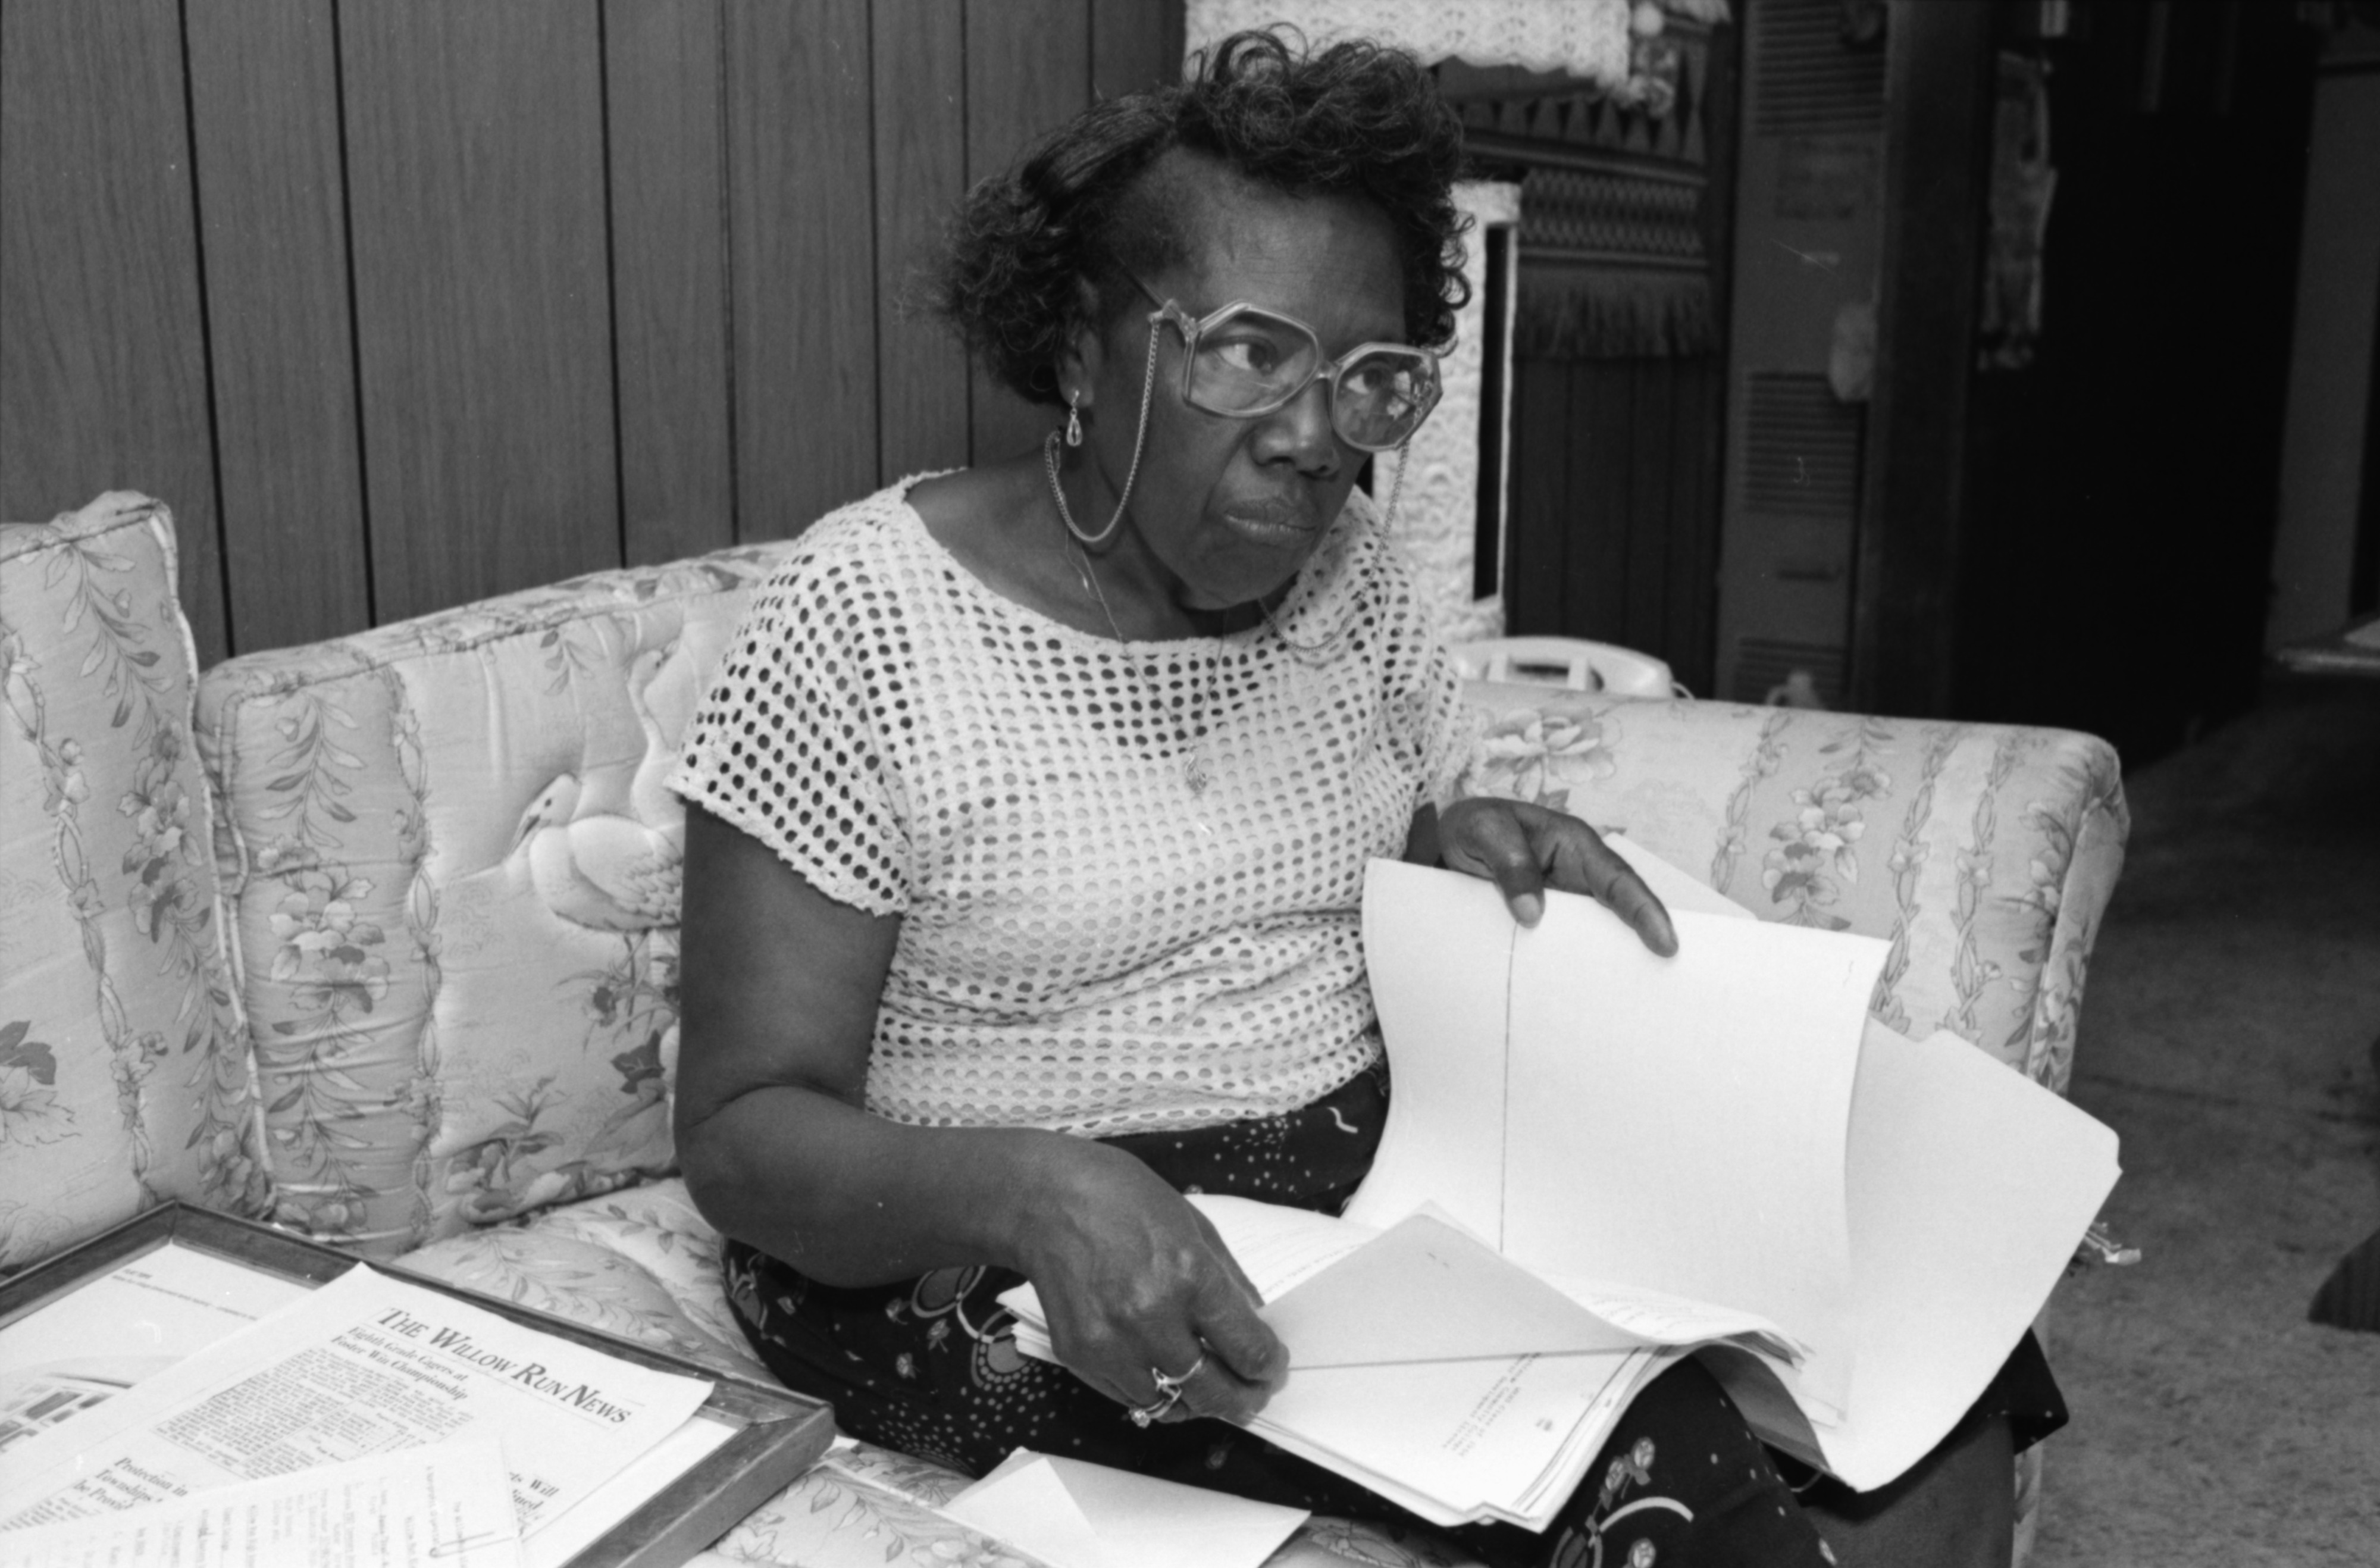 Tessie Freeman Shares Willow Run Black History, July 1991 image